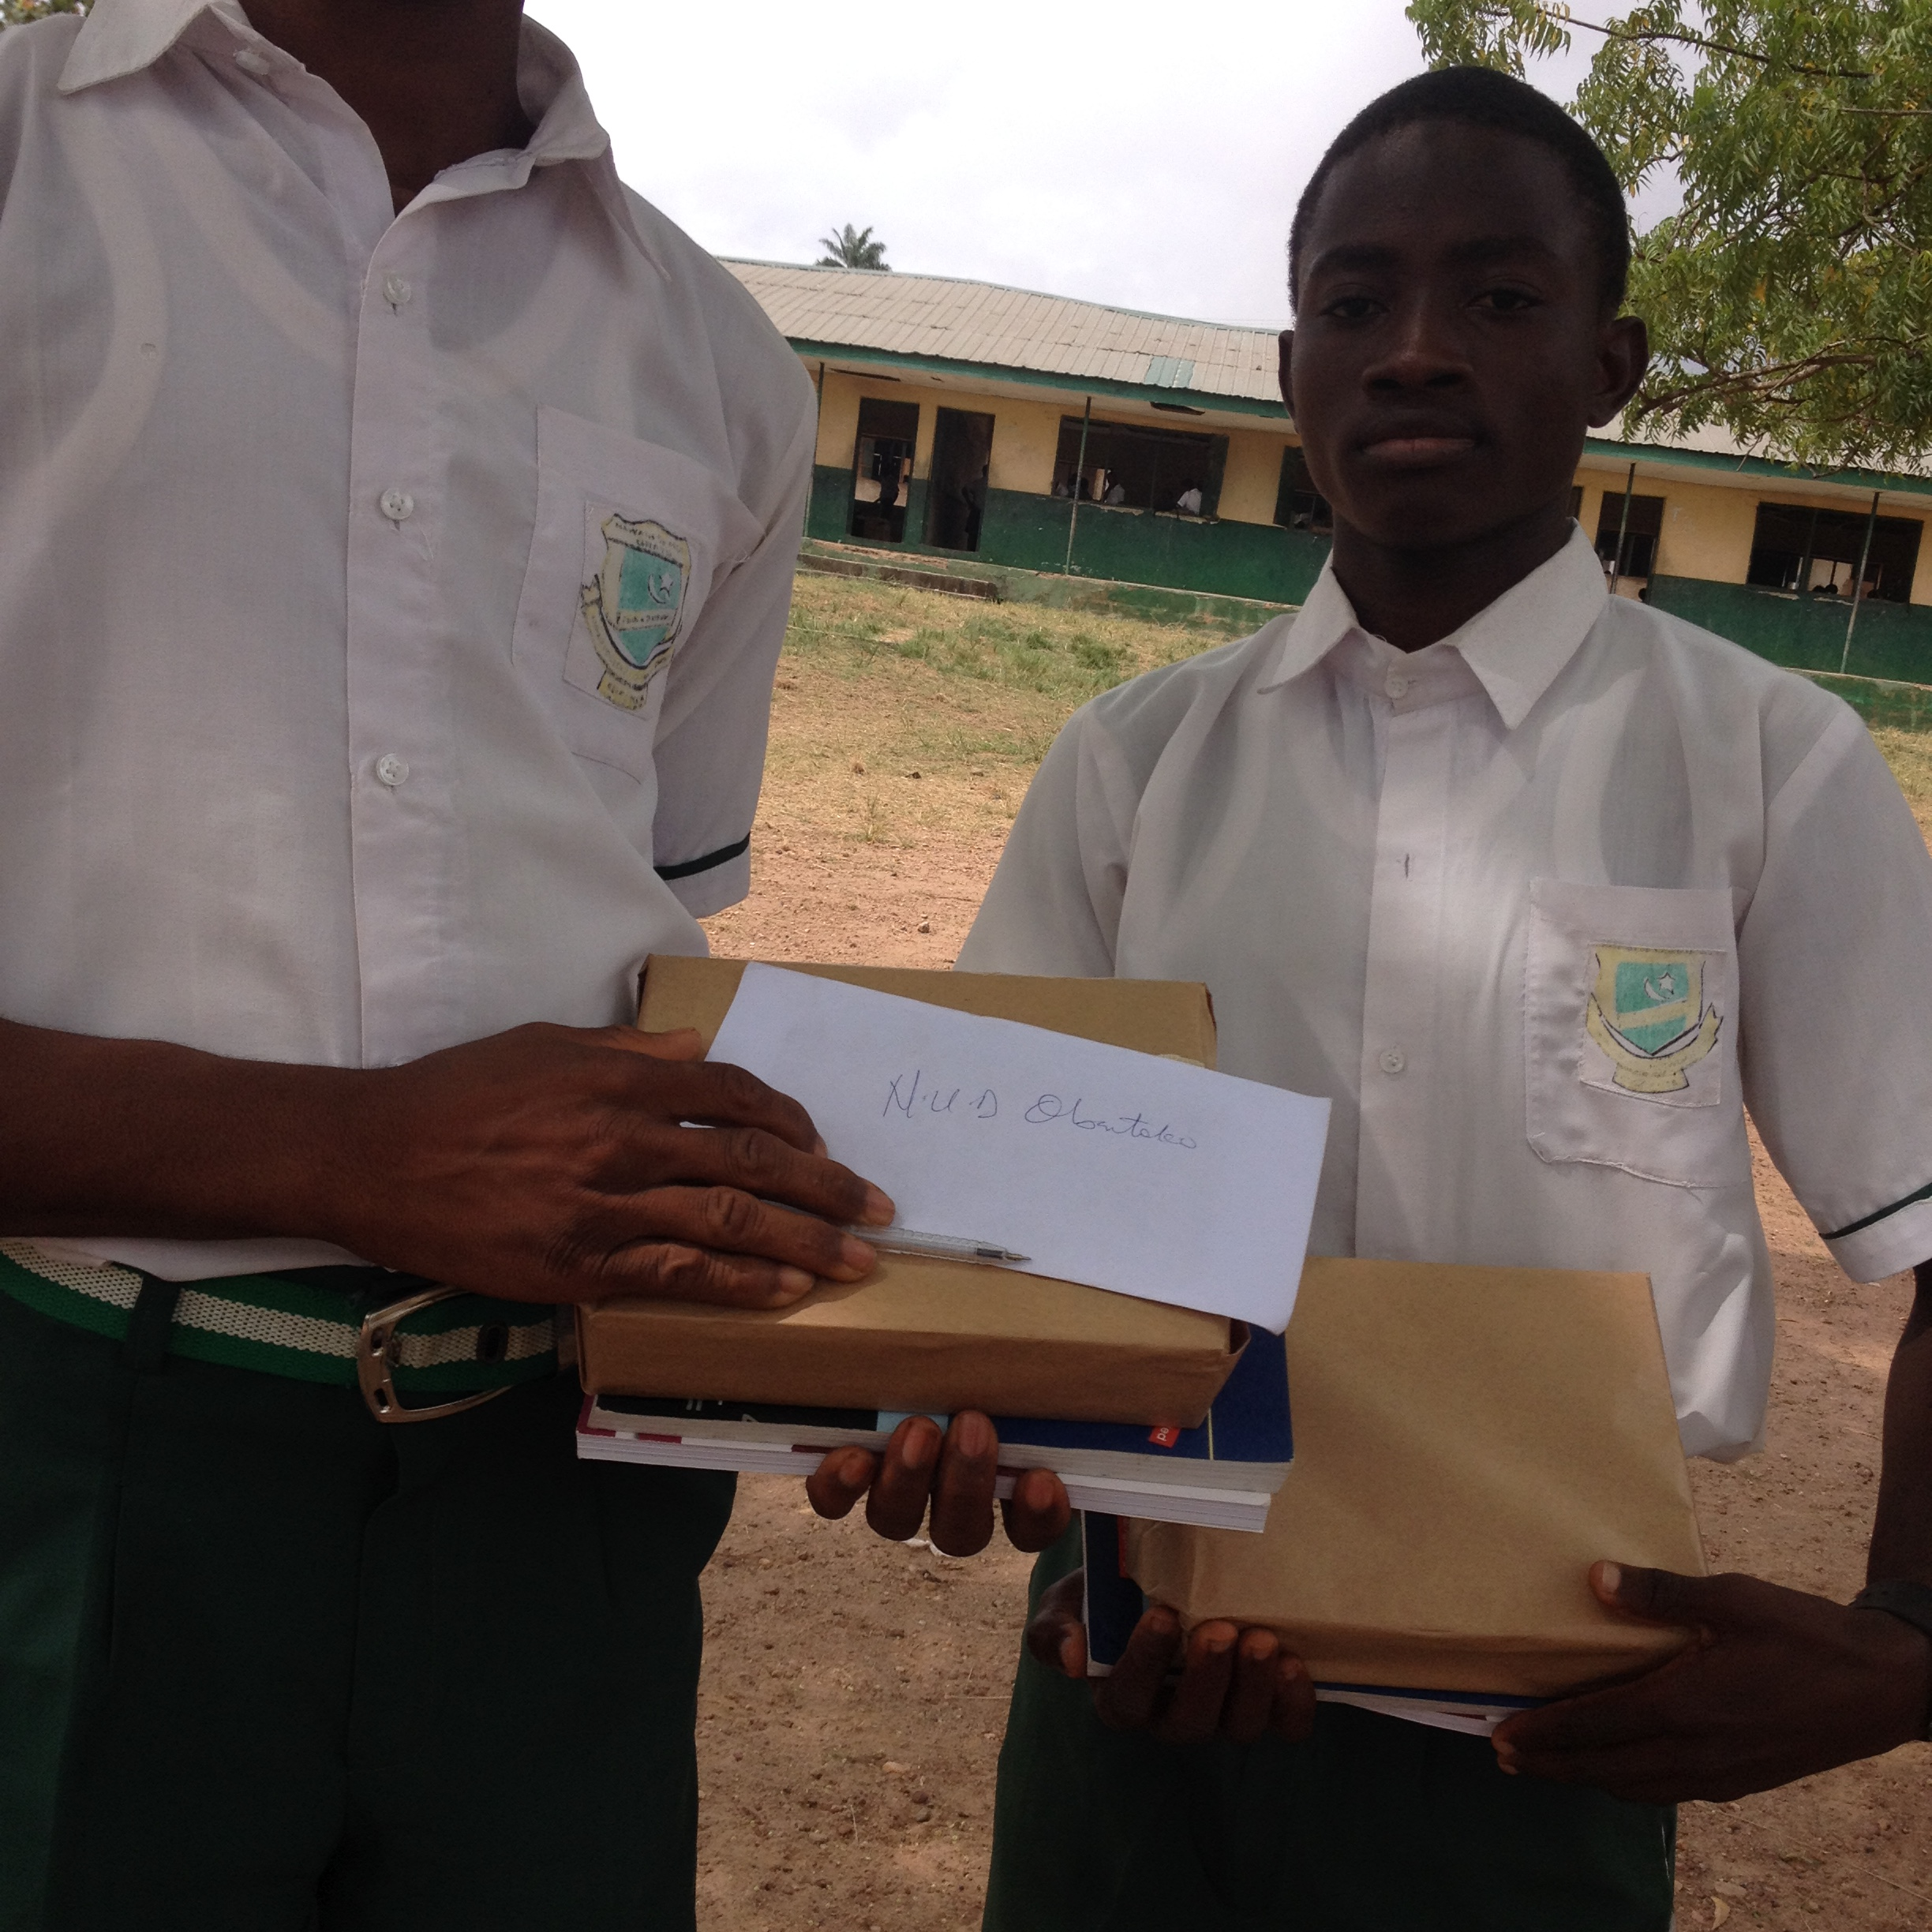 two students holding books